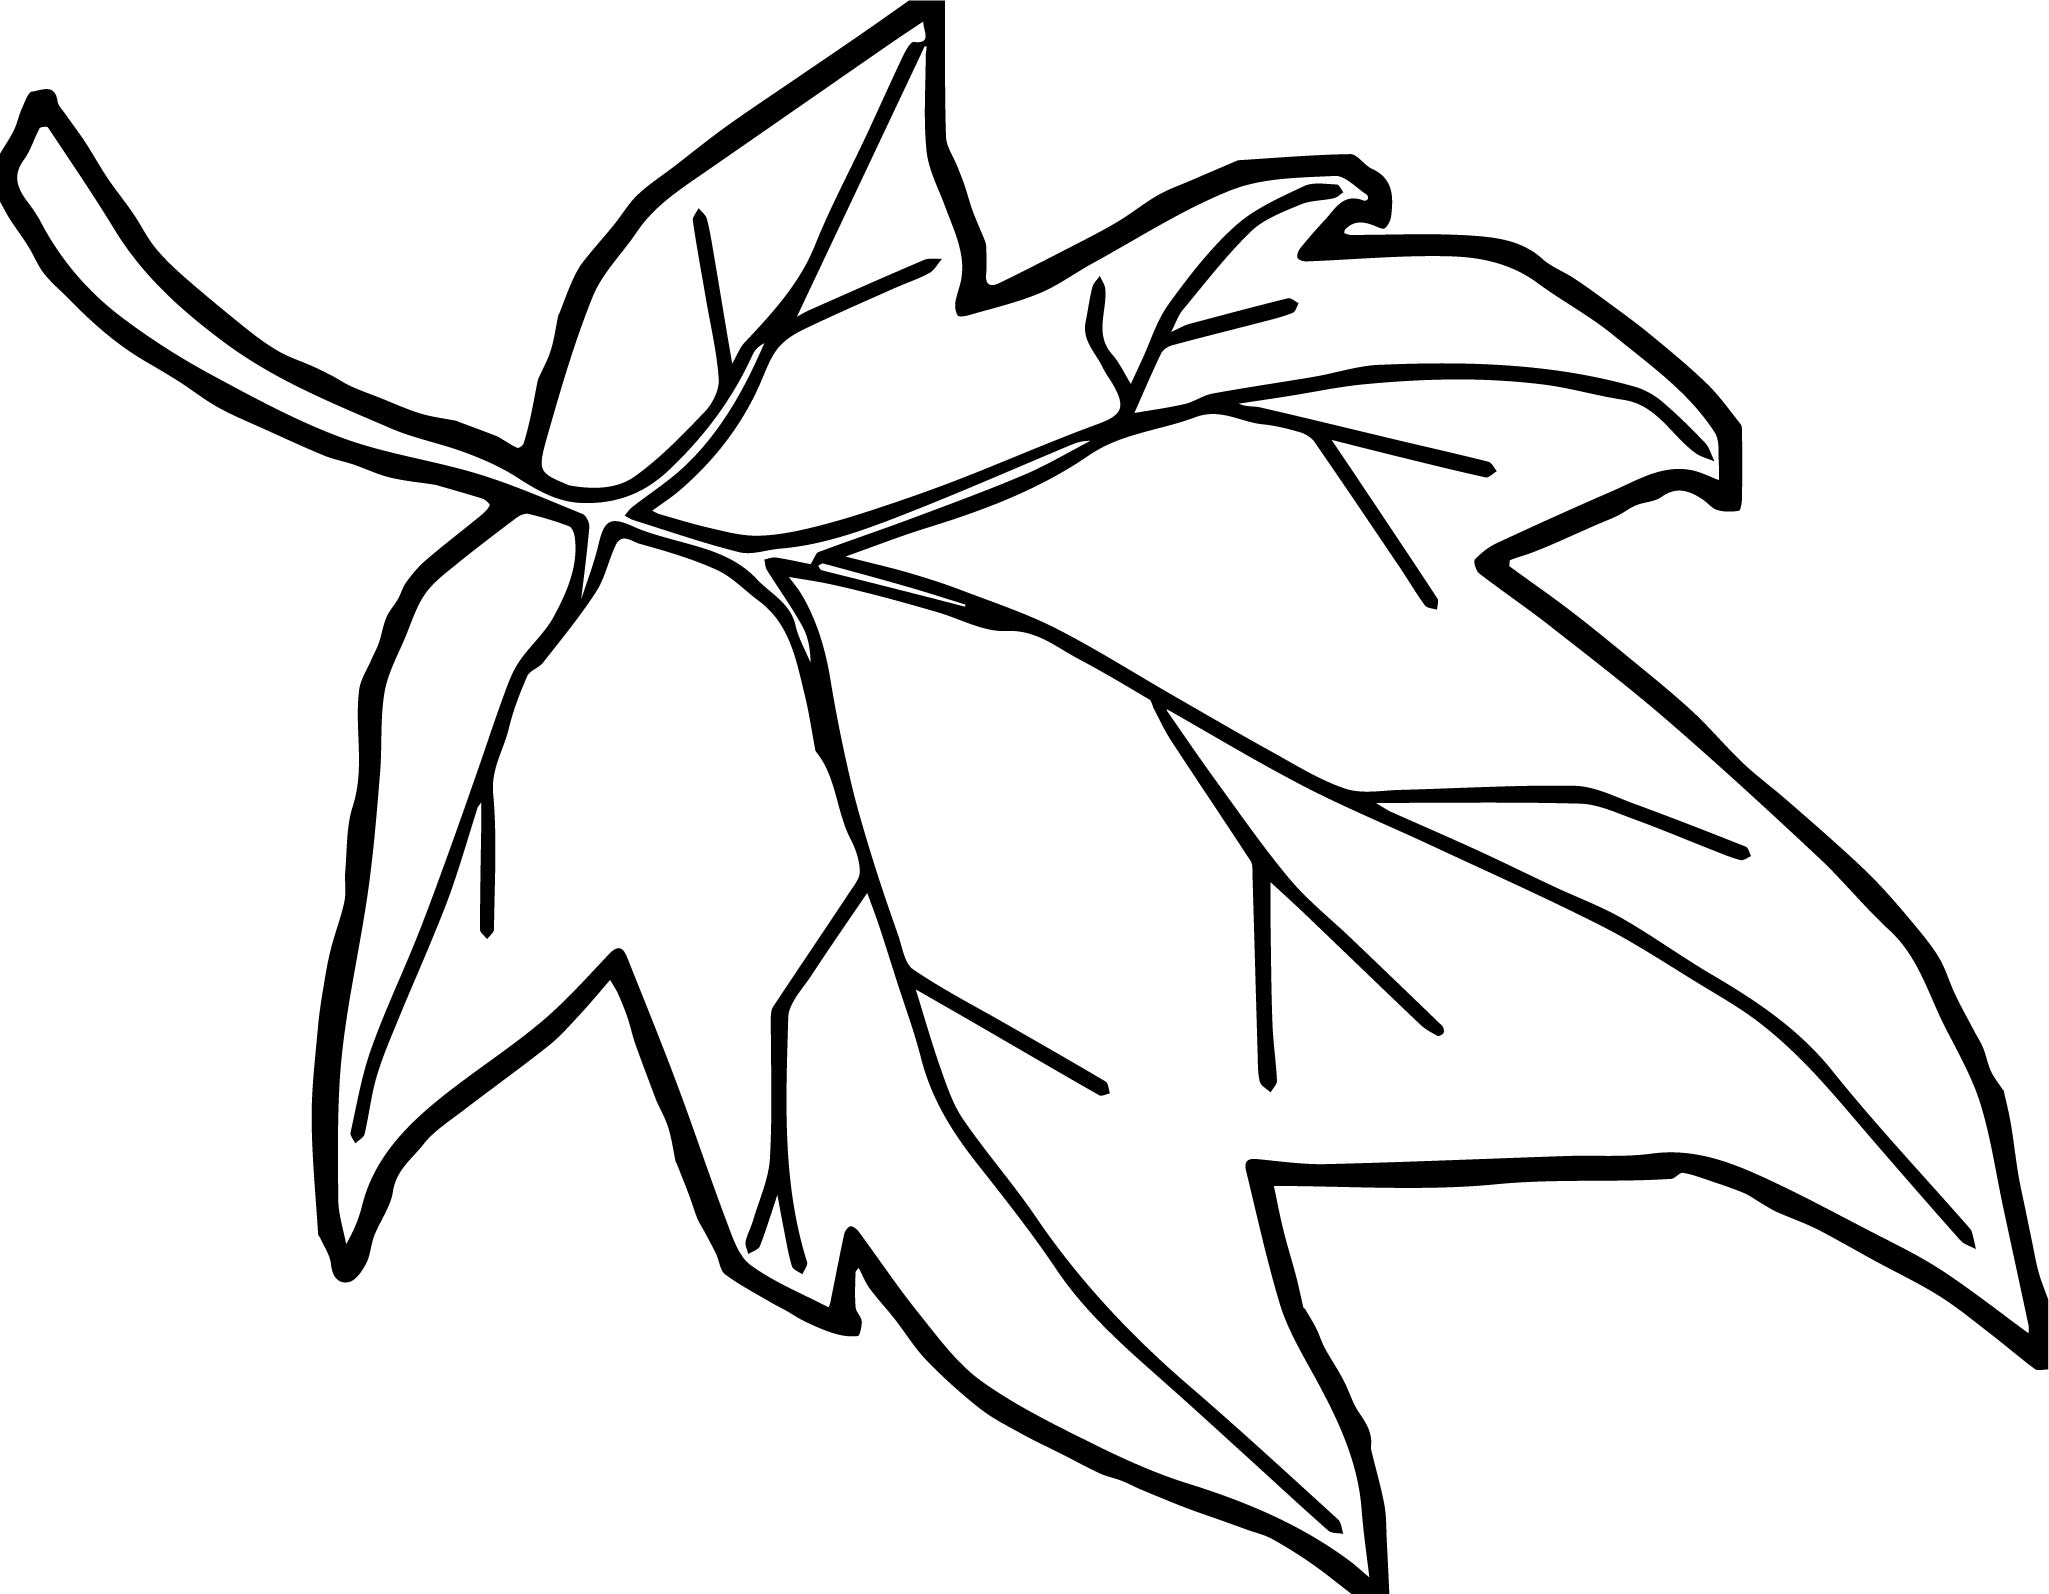 Coloring page autumn - Orange Autumn Leaf Coloring Page